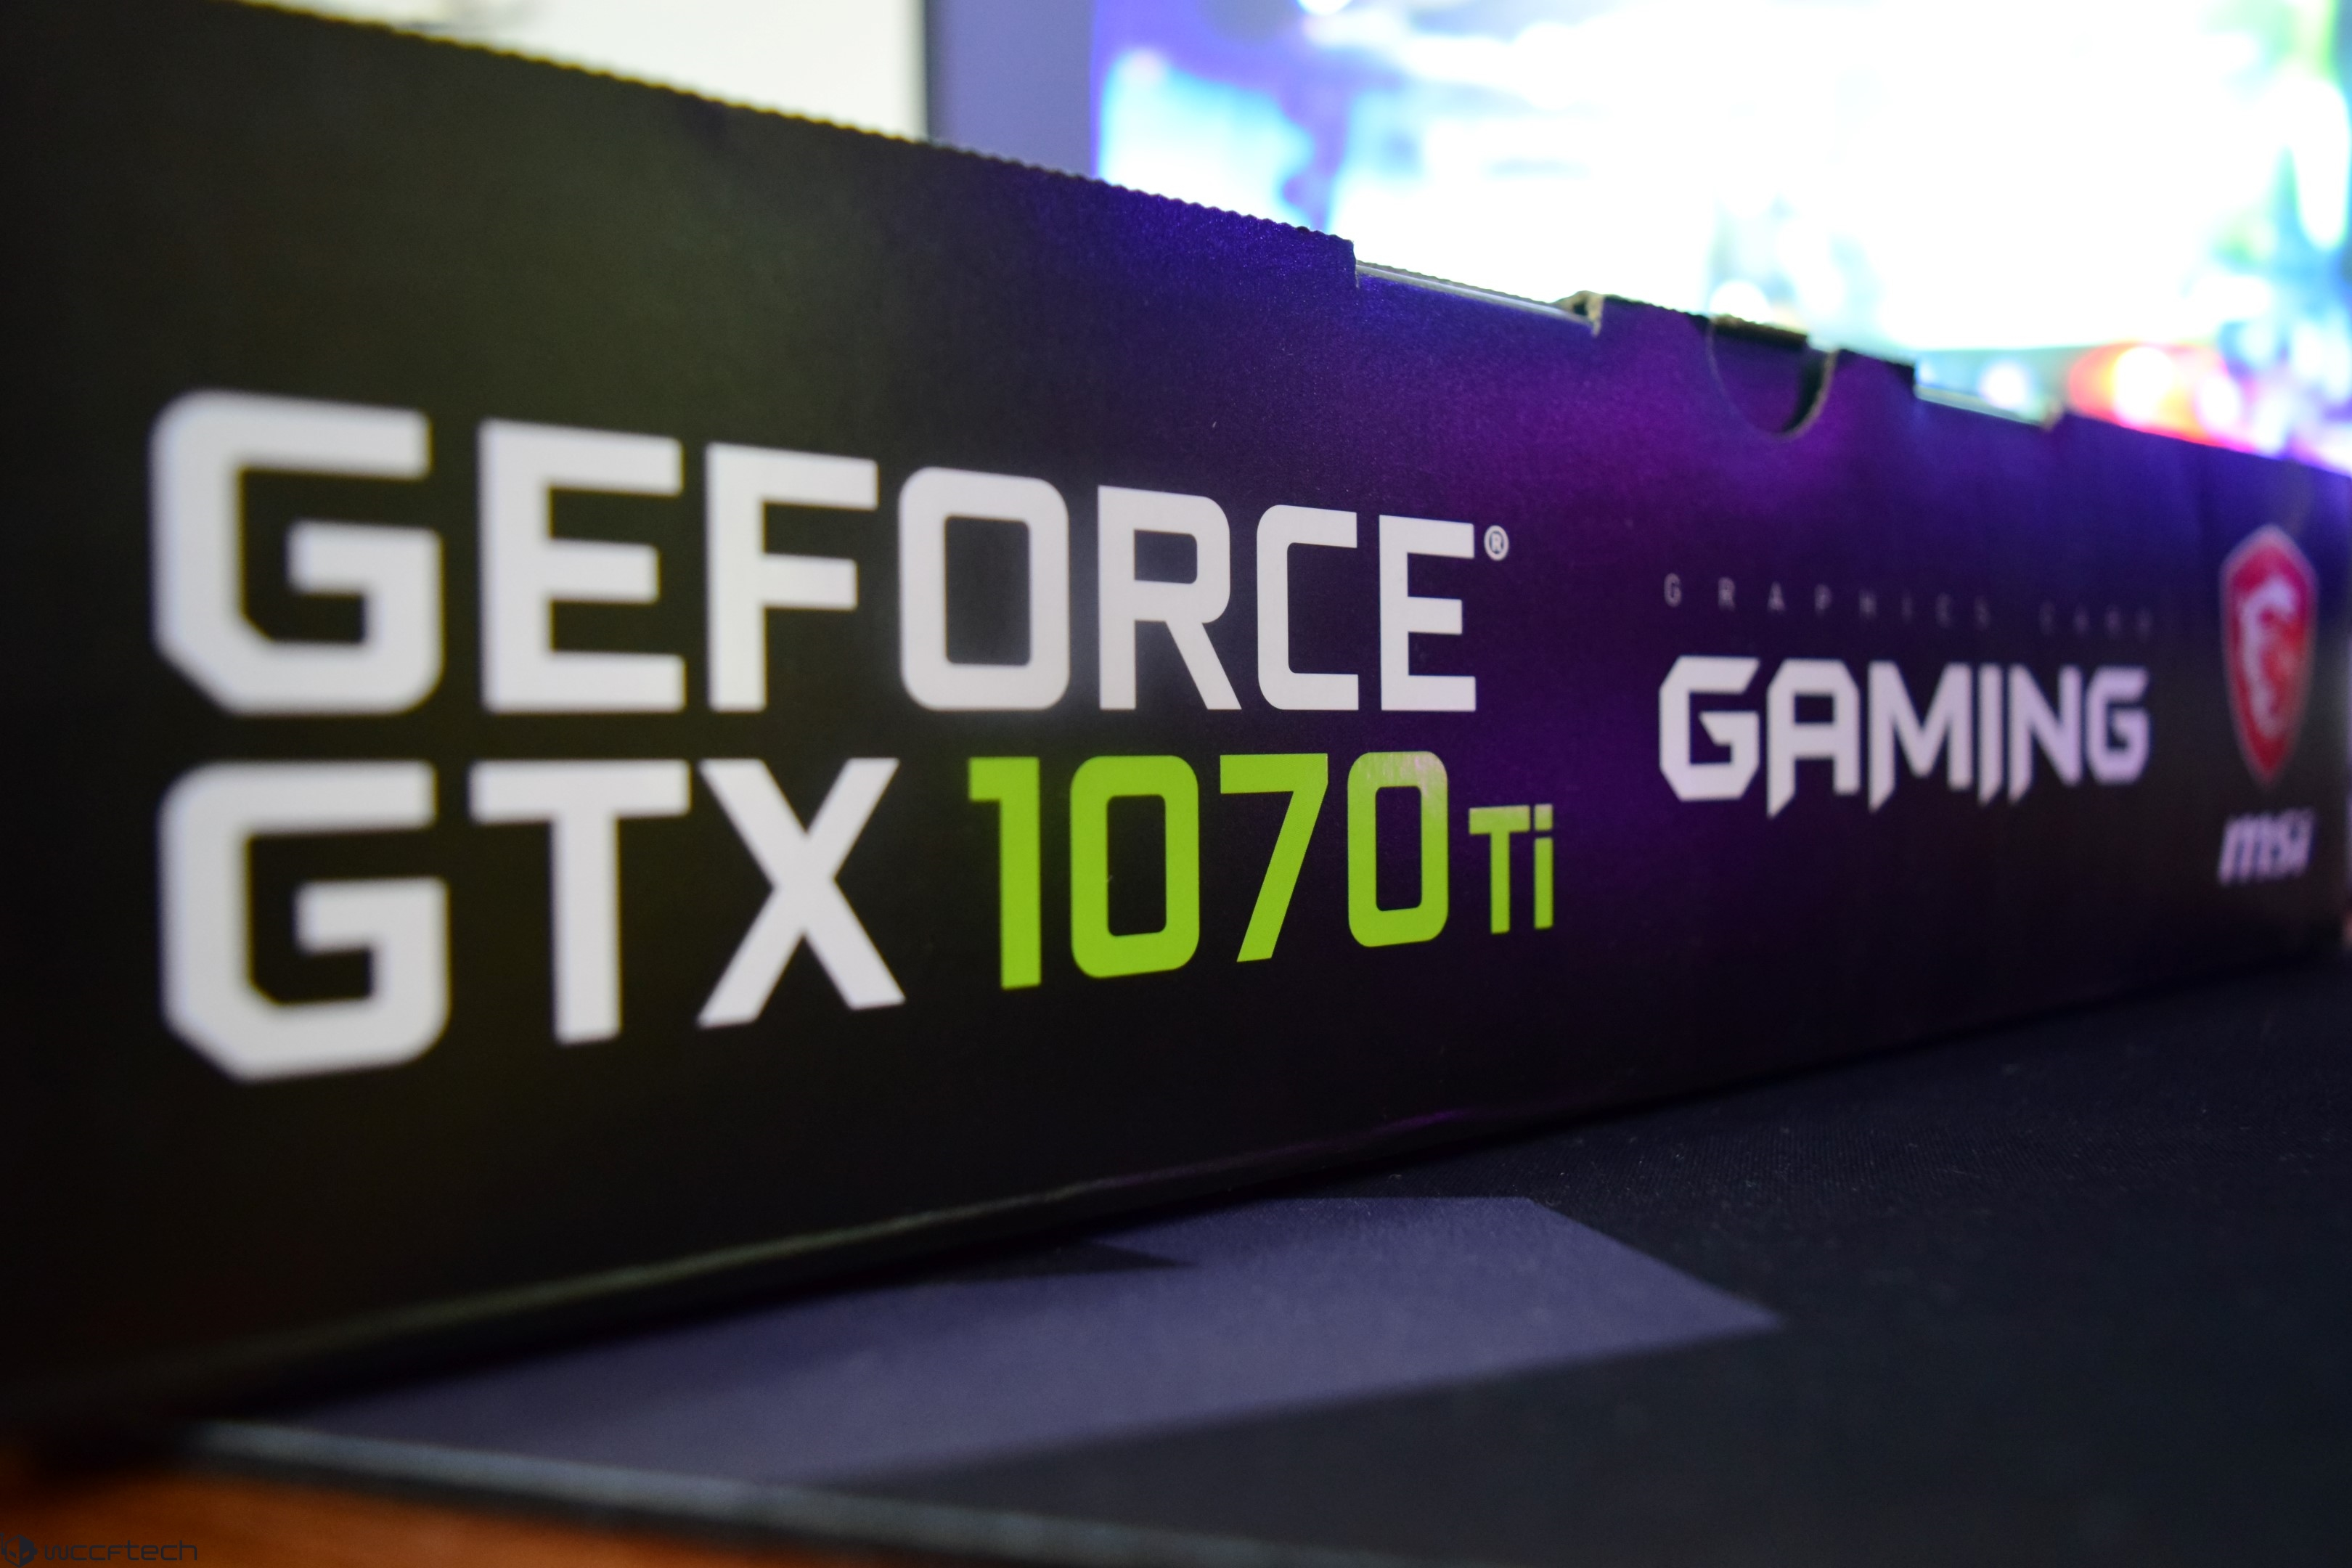 MSI GeForce GTX 1070 Ti Titanium 8 GB Review – Twin Frozr VI Now In